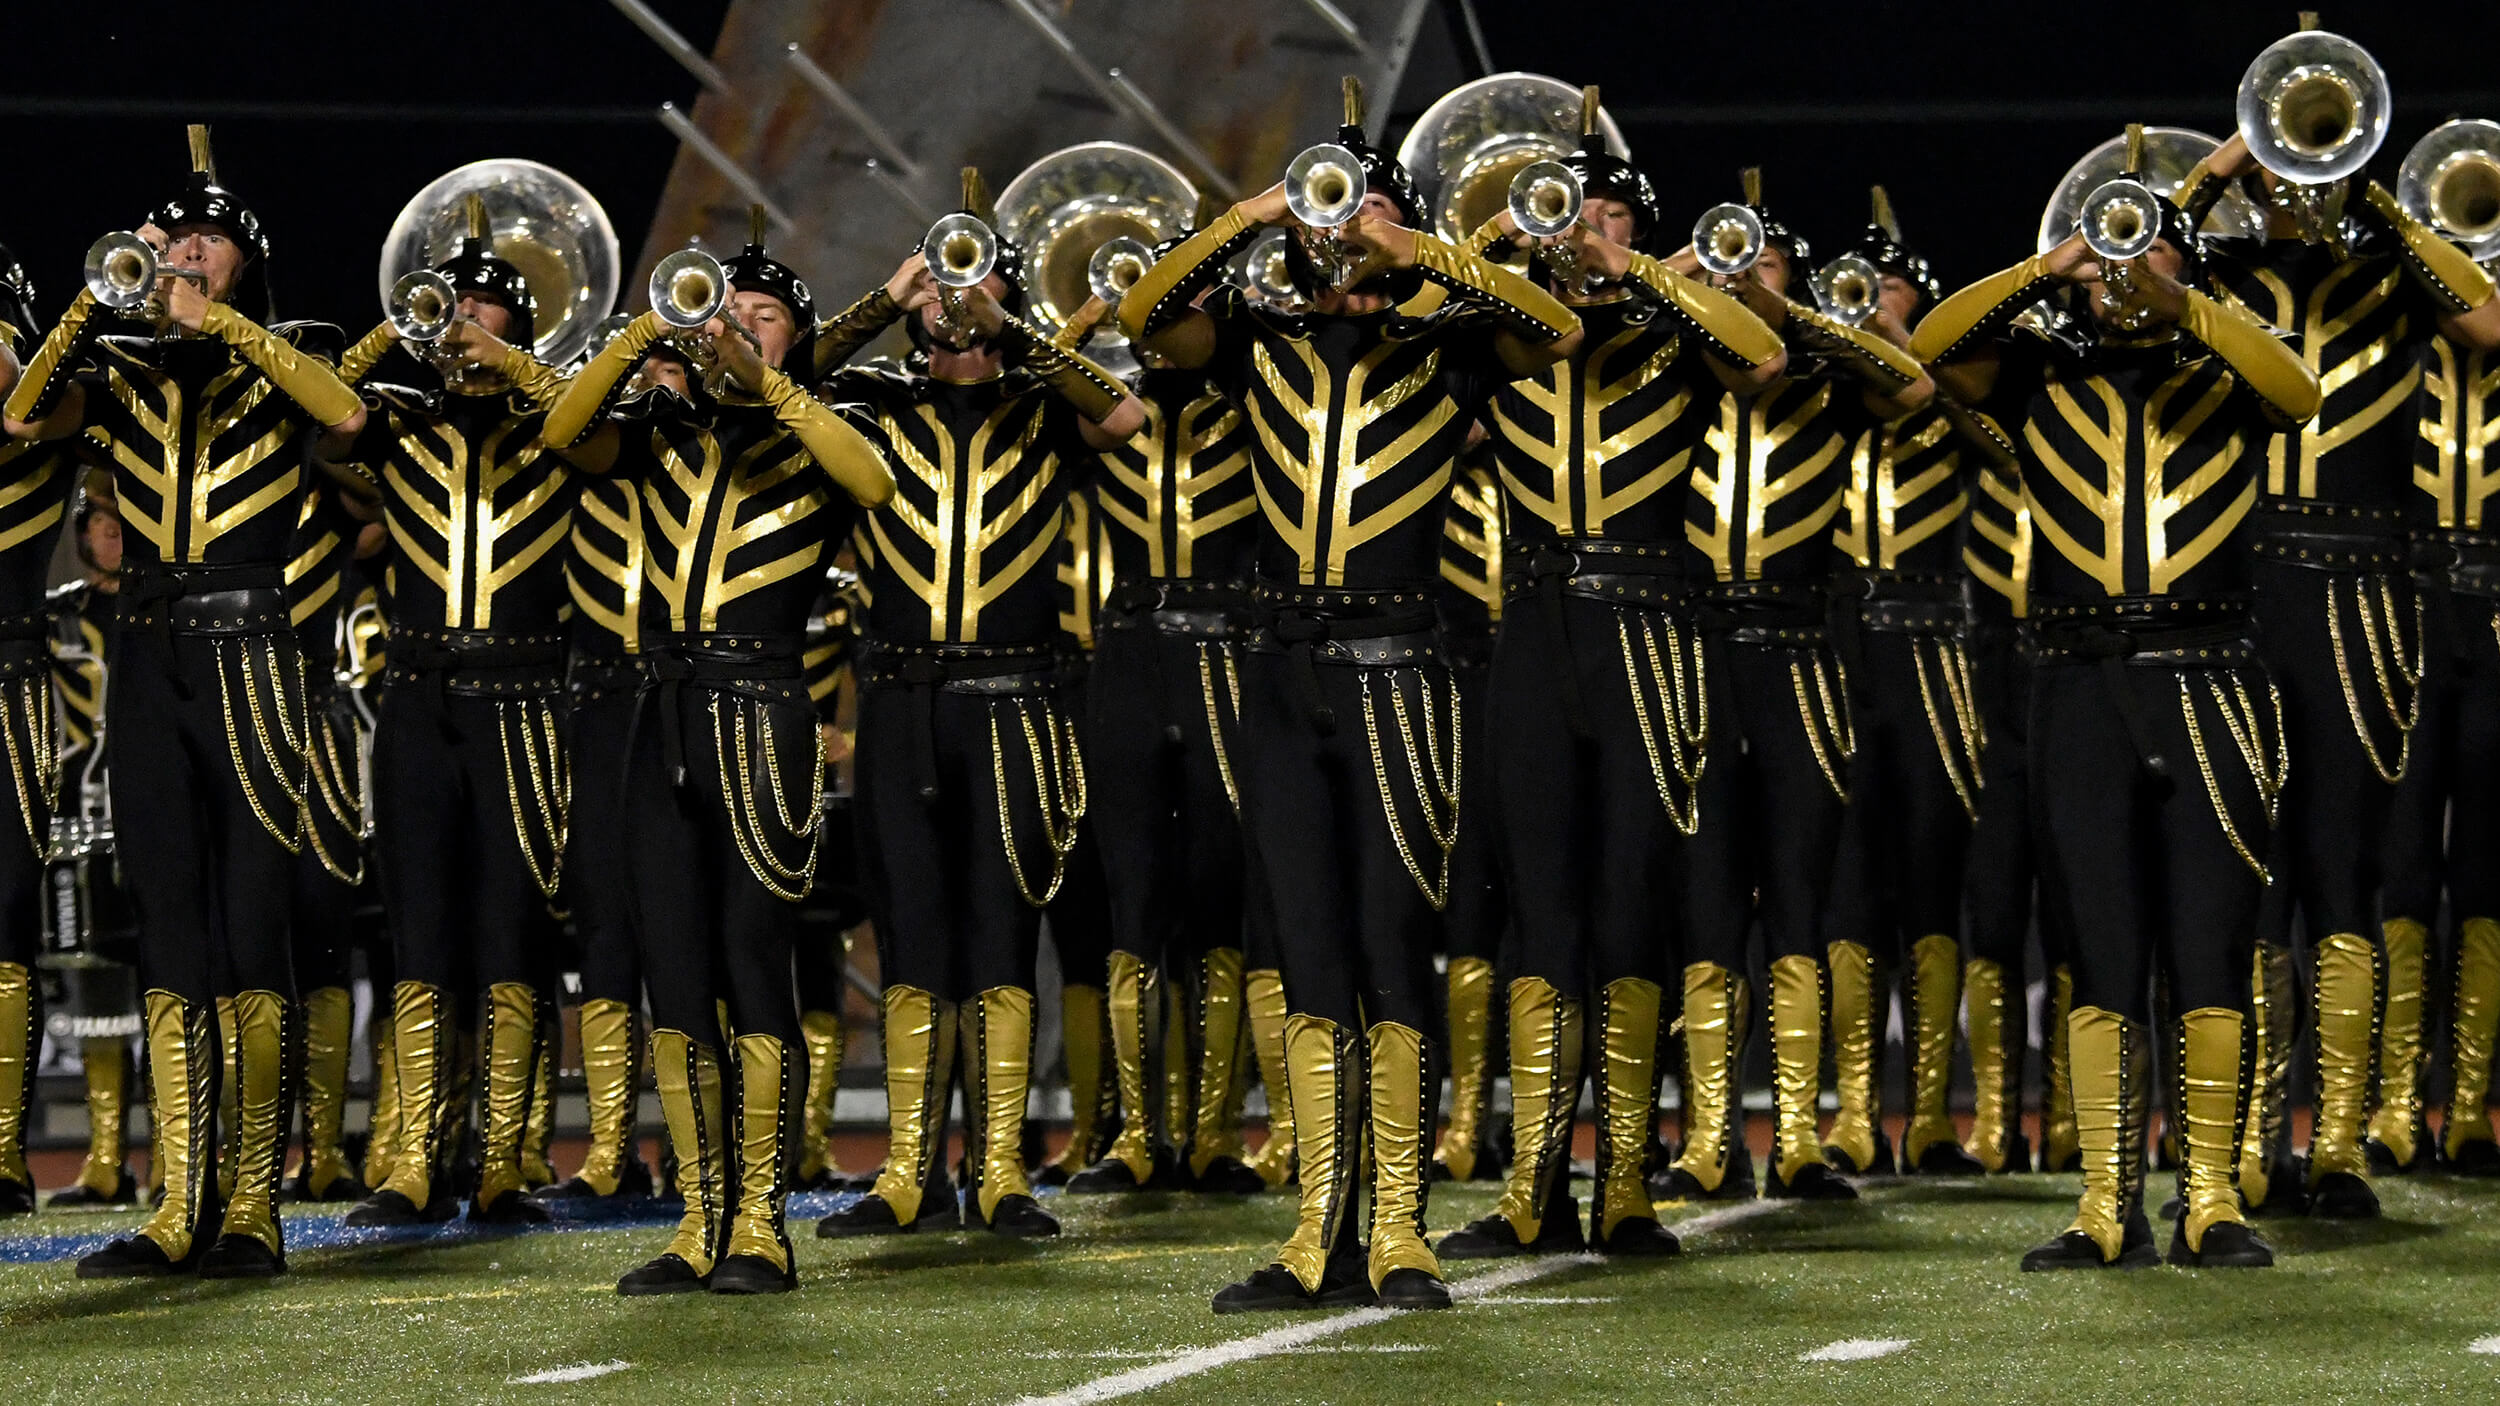 2020 Annual Meetings: Q&A with Boston Crusaders' Chris Holland